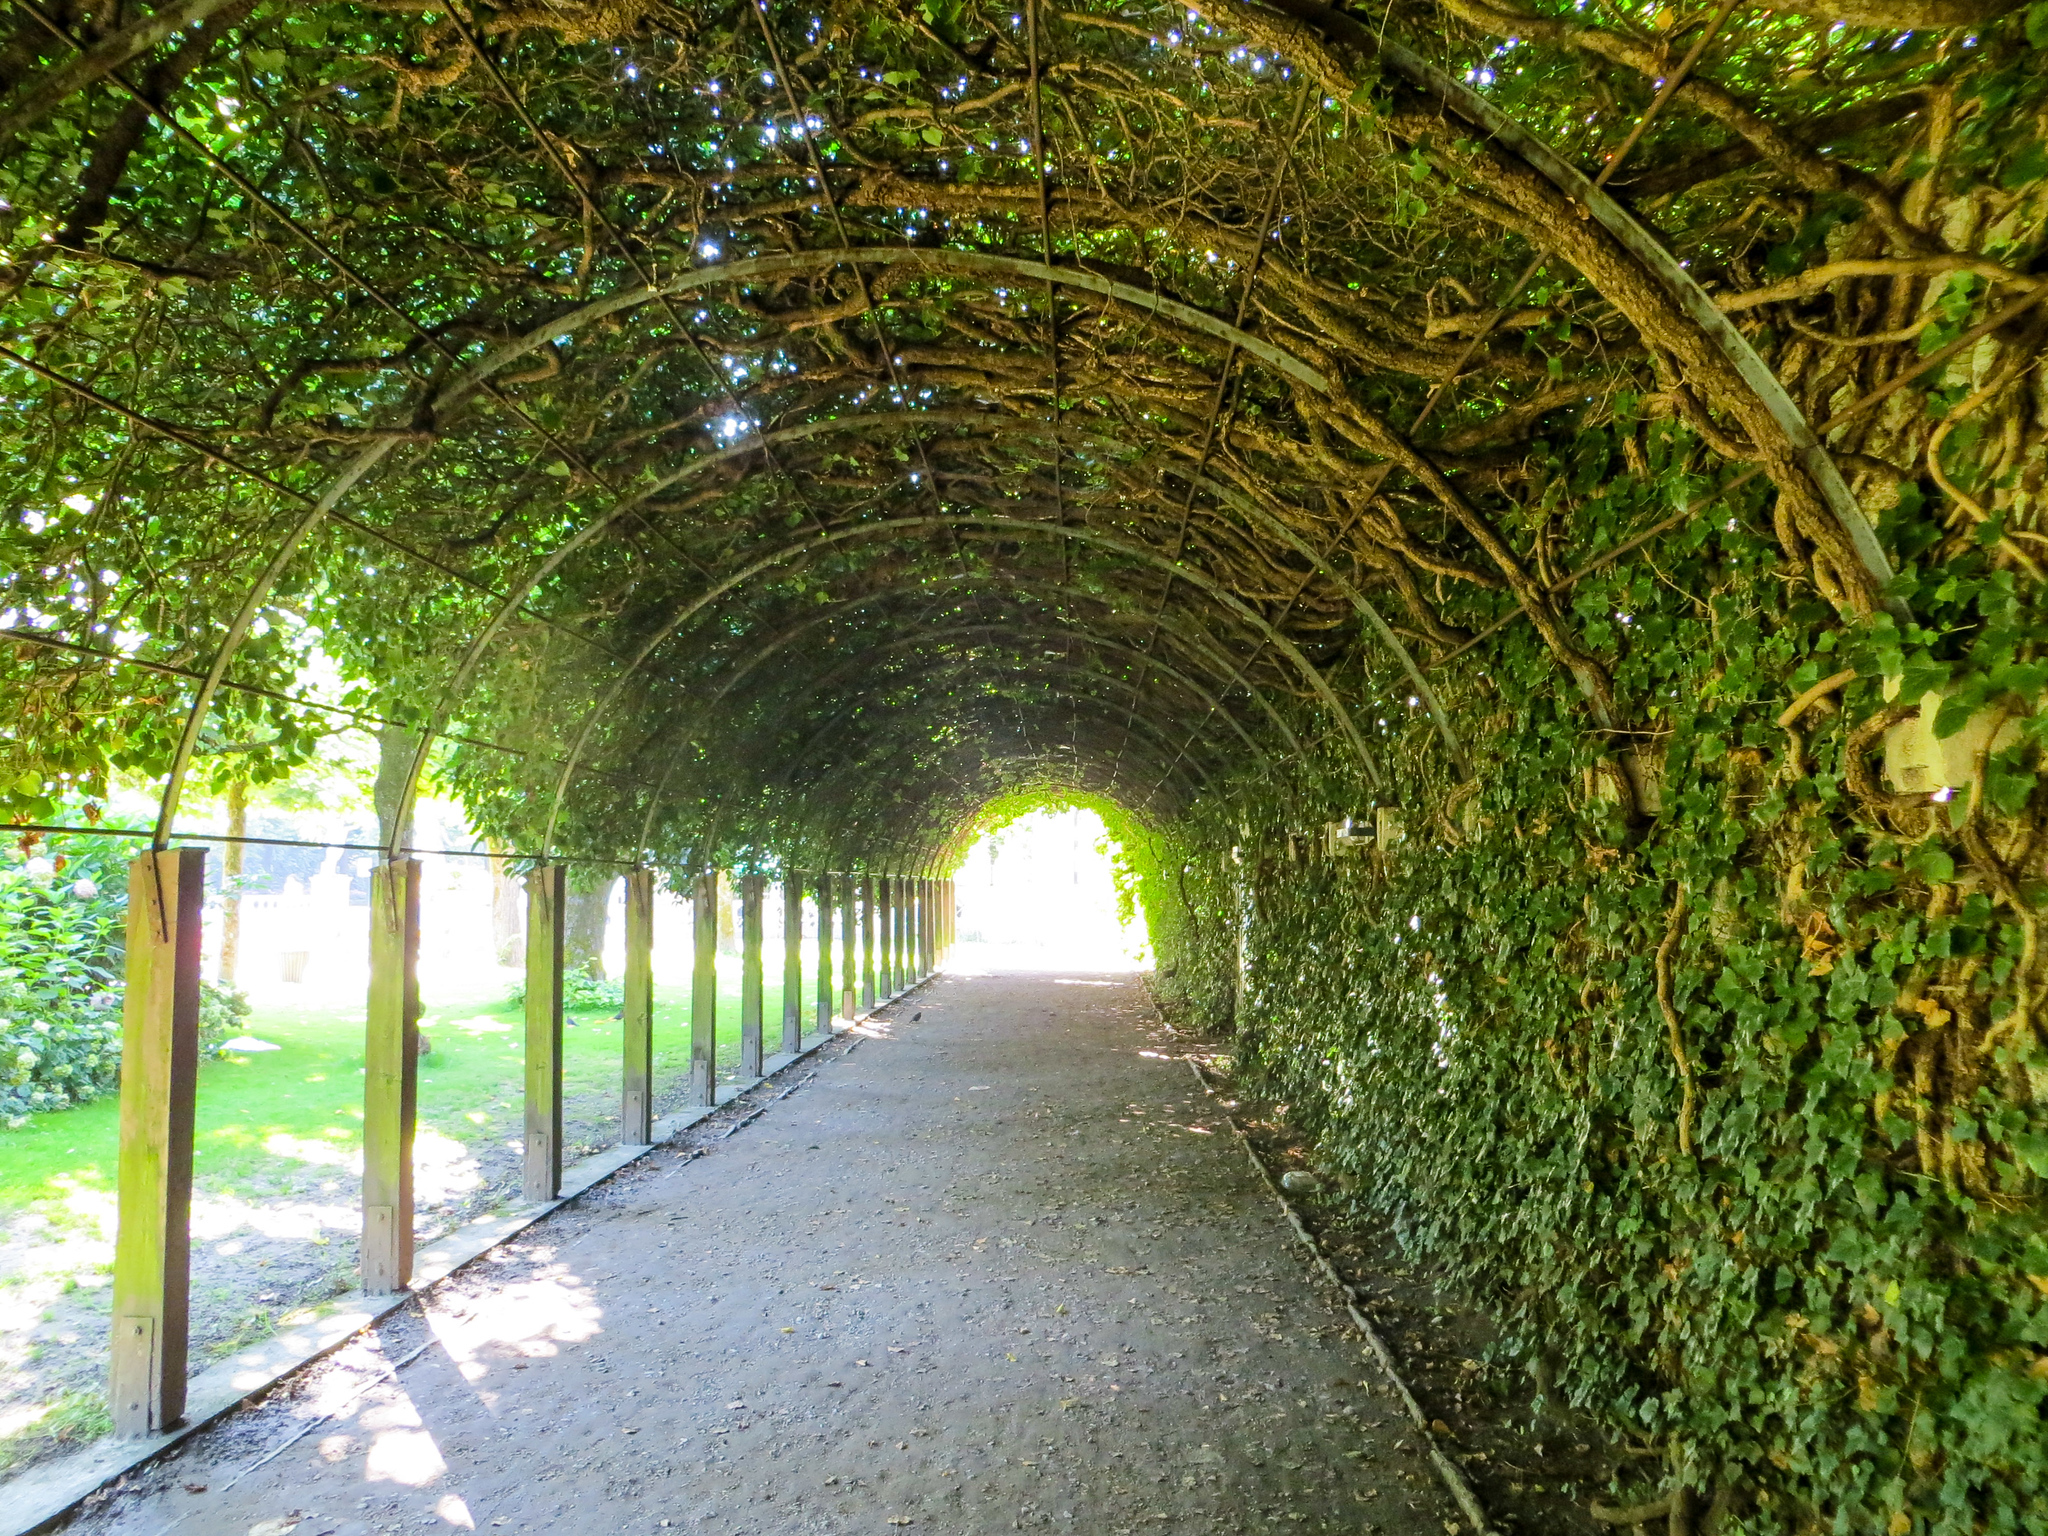 backpacking europe routes 2 weeks will take you to this green tunnel in salzburg